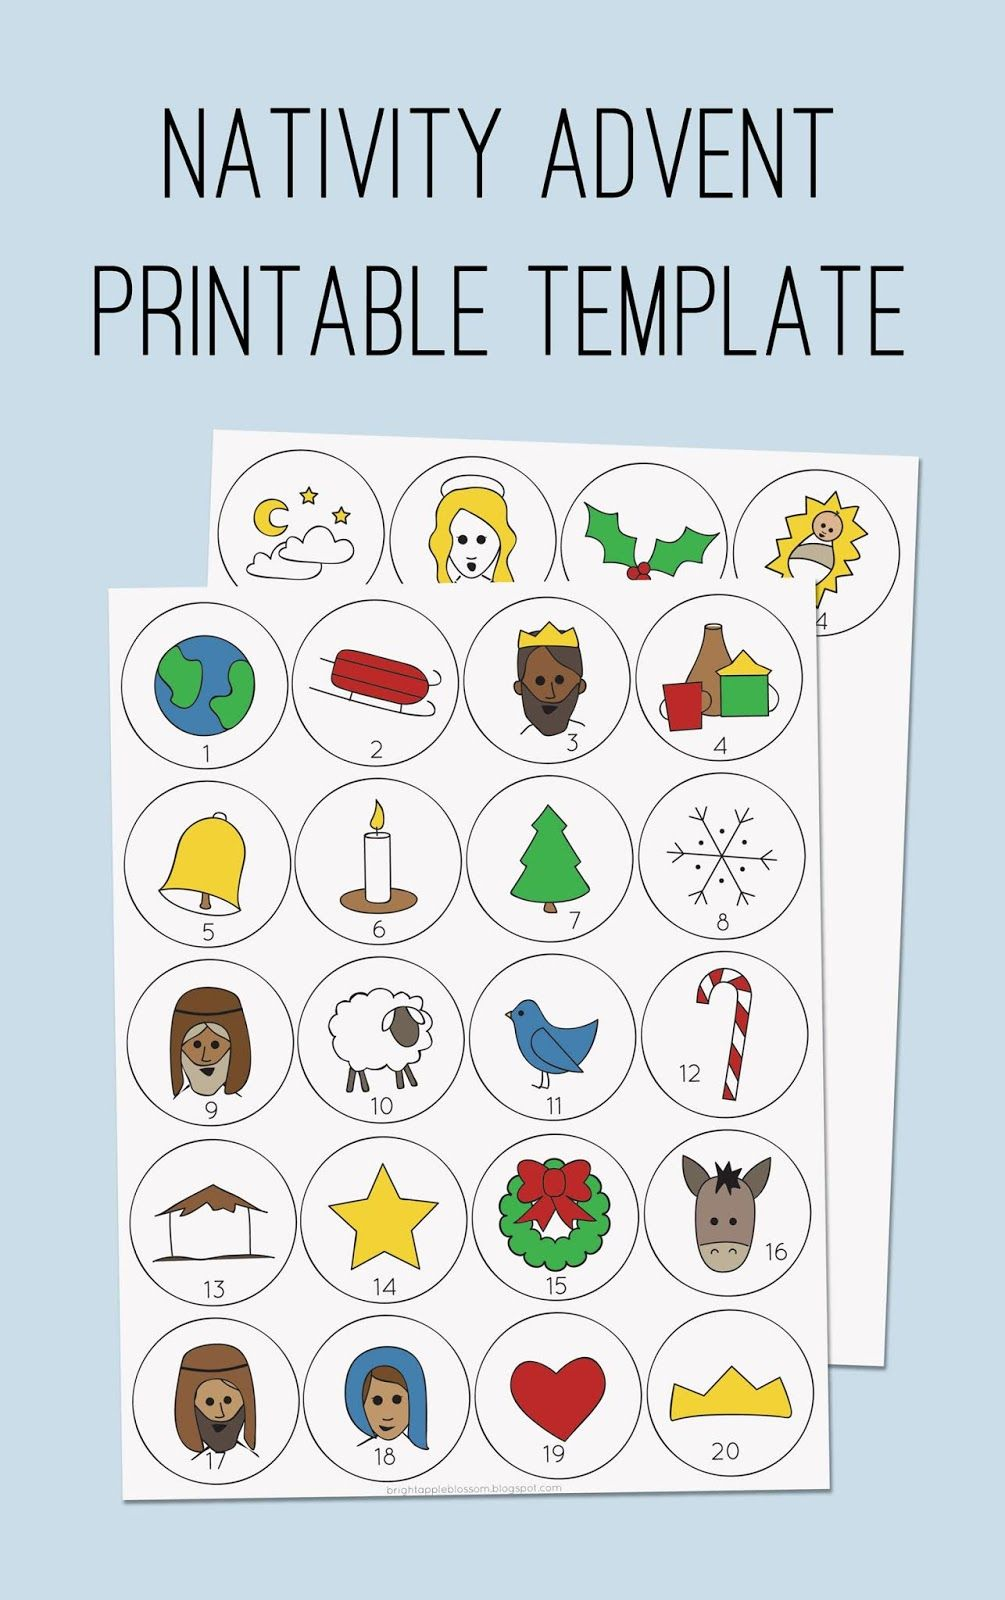 picture regarding Free Printable Advent Calendar Template called Nativity Introduction Template; Christ based arrival; Xmas